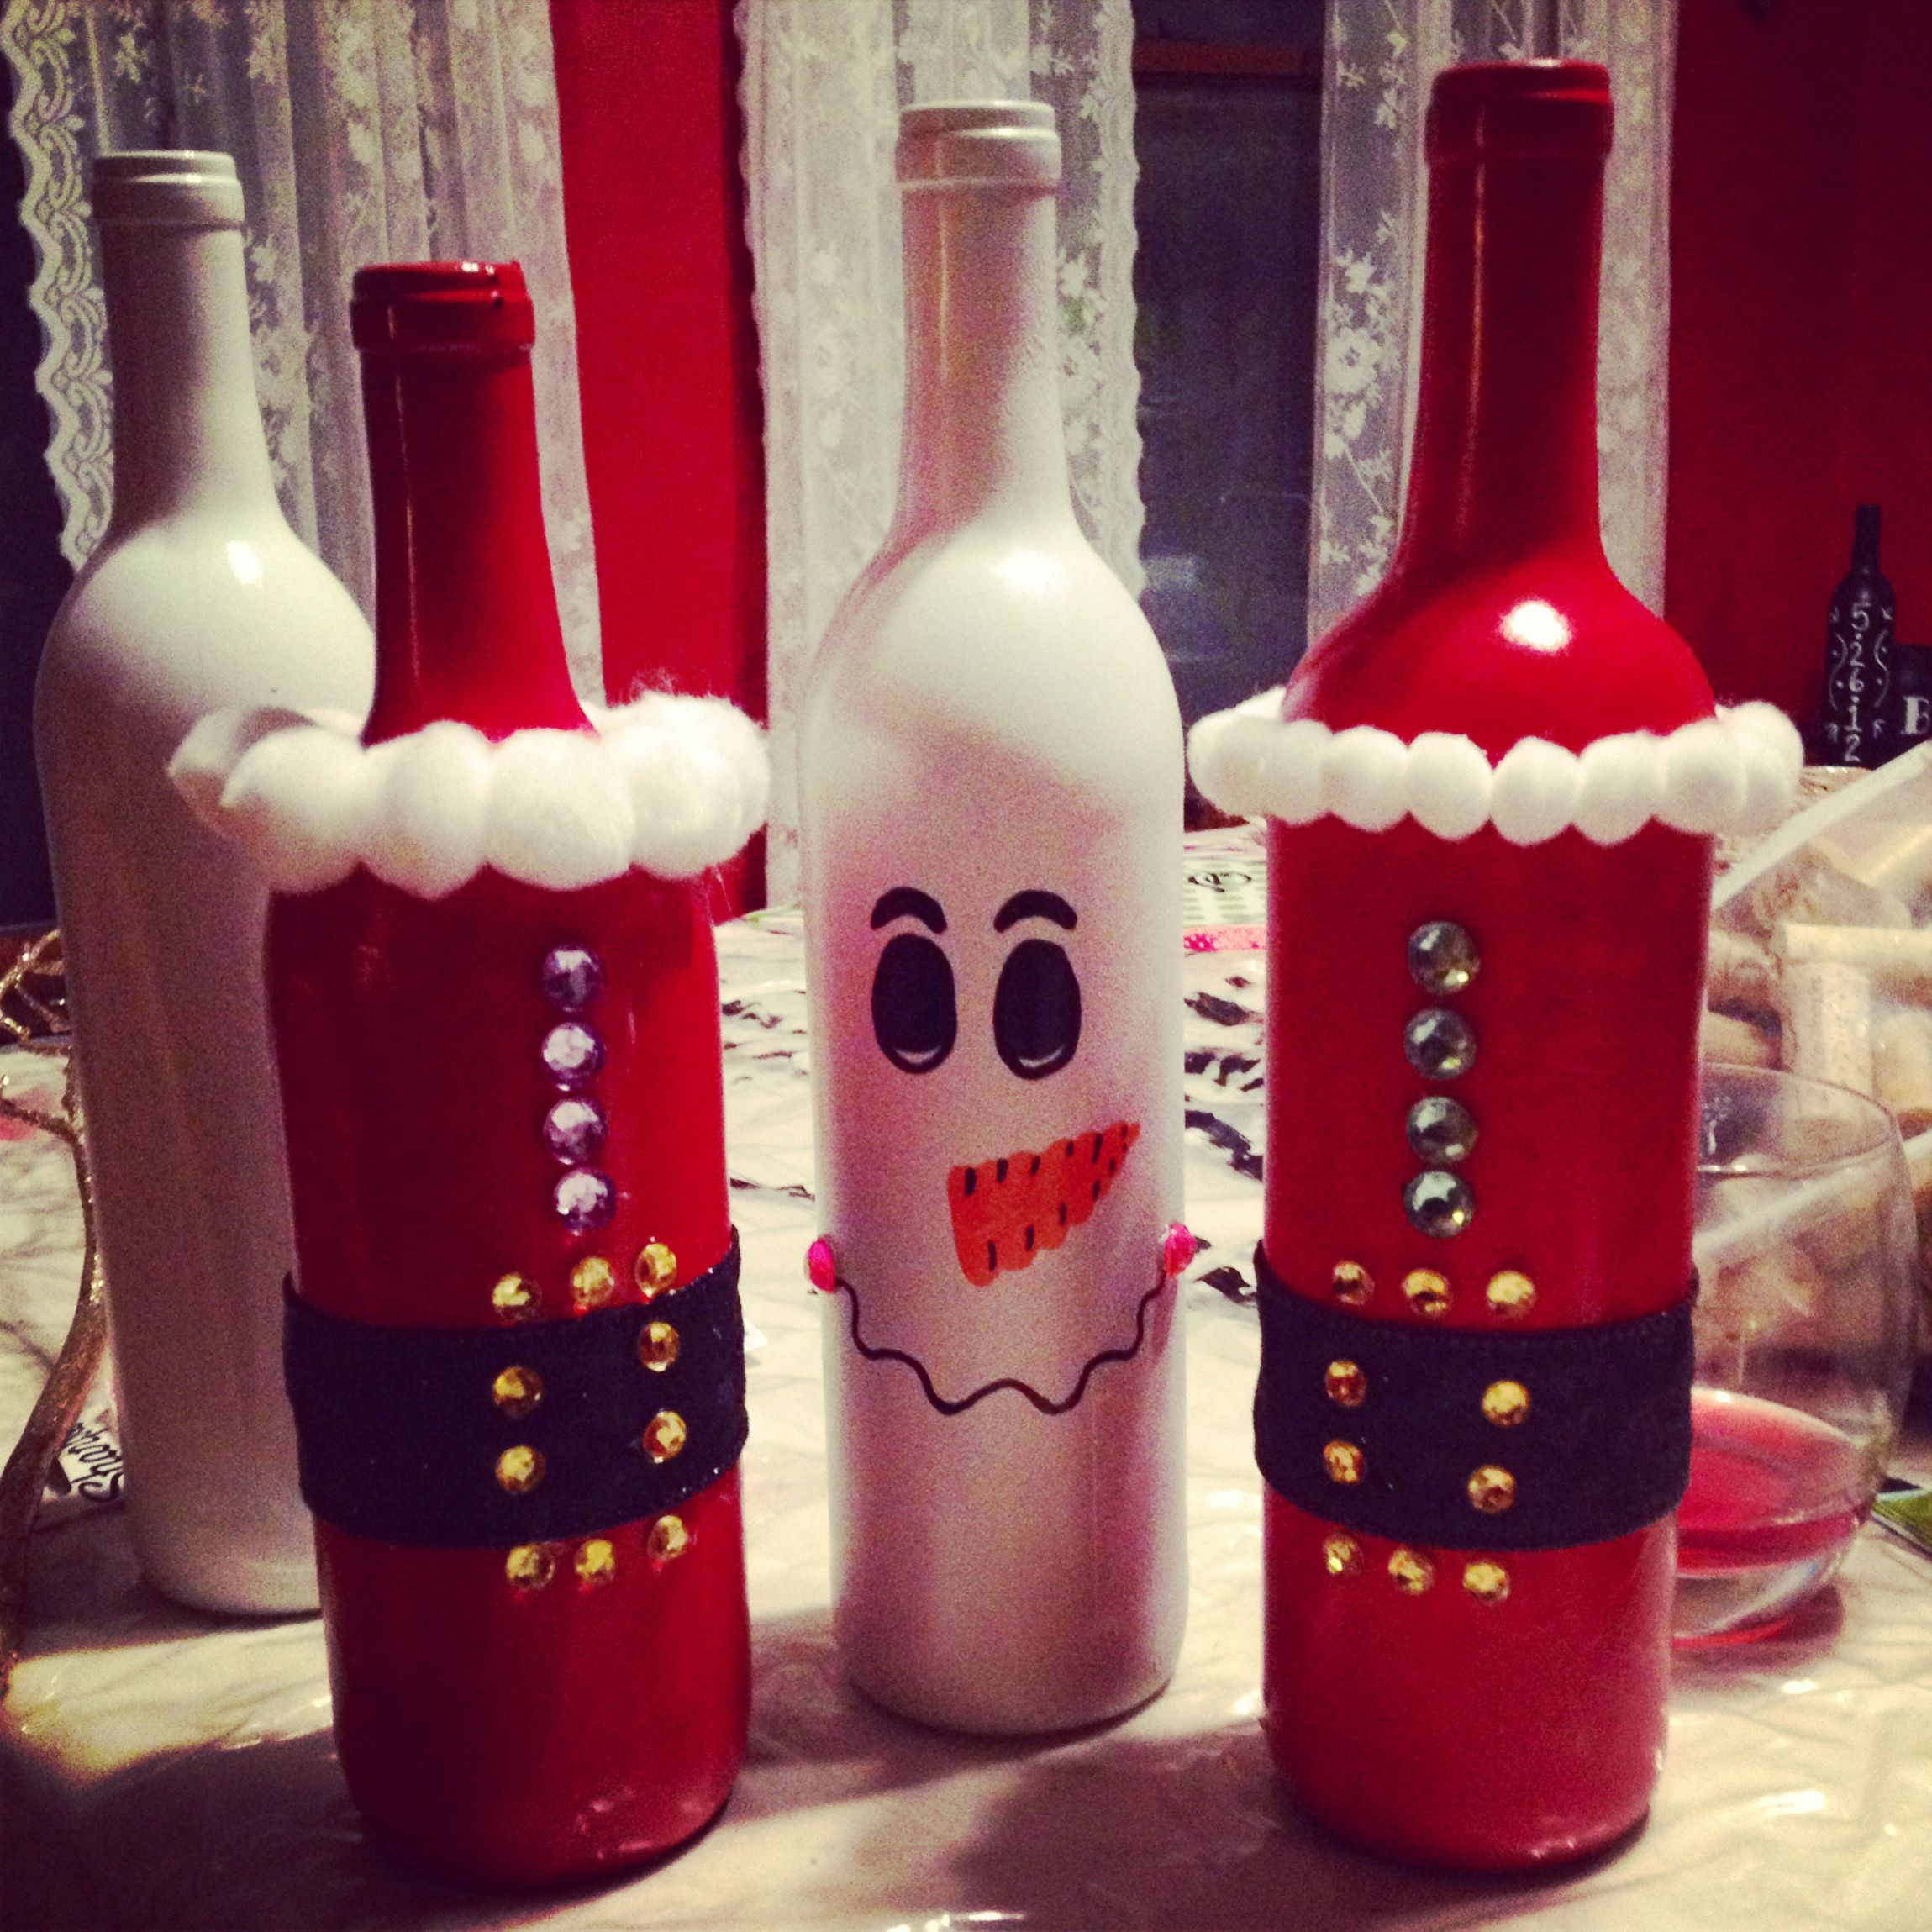 Share for How to decorate a wine bottle for a gift